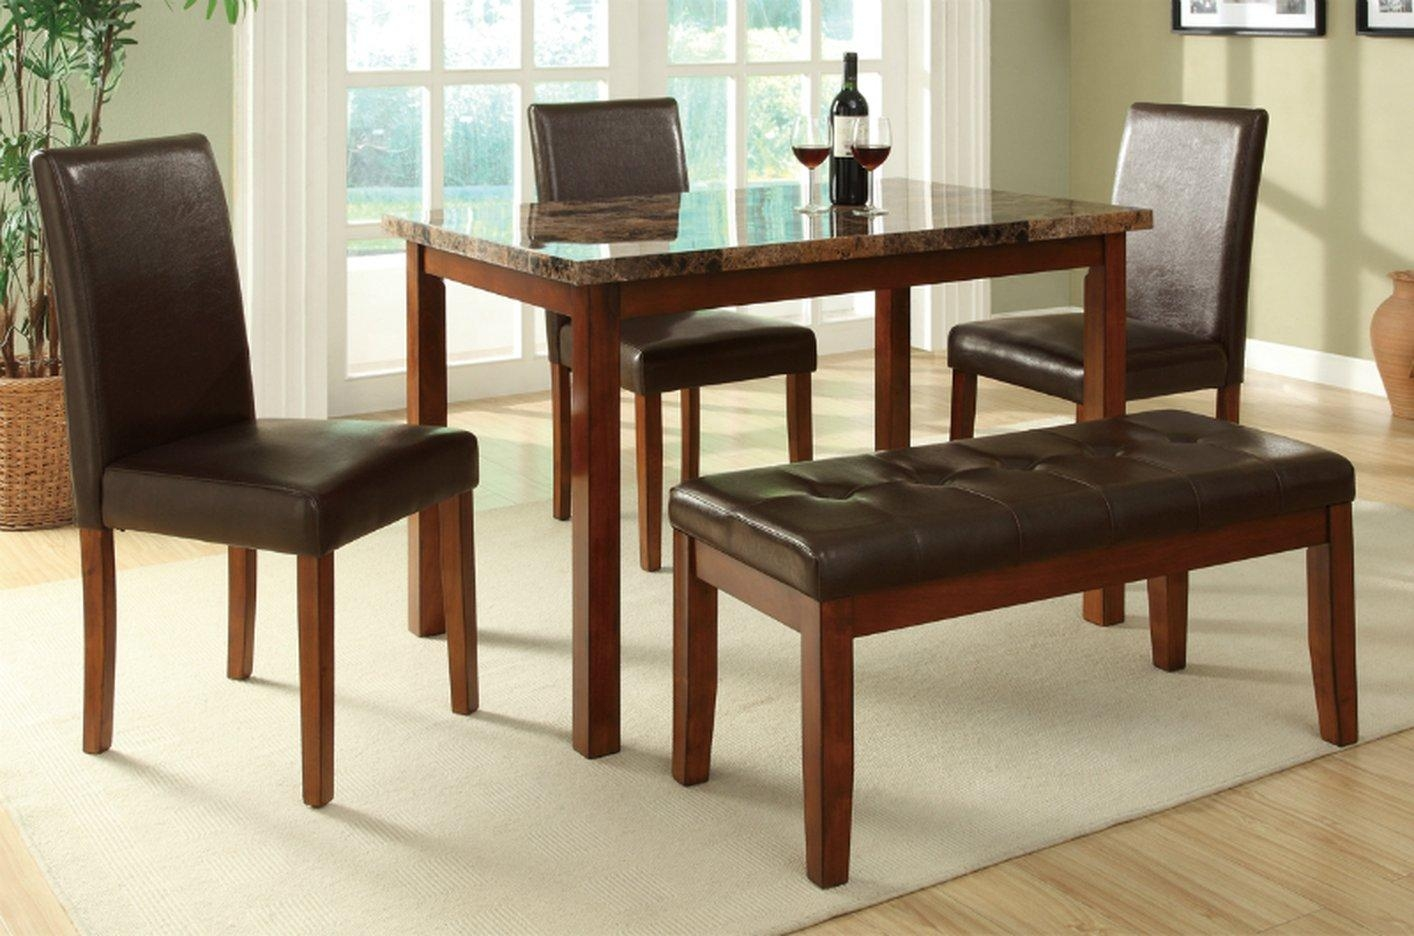 Brown Leather Dining Table And Chair Set – Steal A Sofa Furniture With Dining Table With Sofa Chairs (Image 5 of 20)